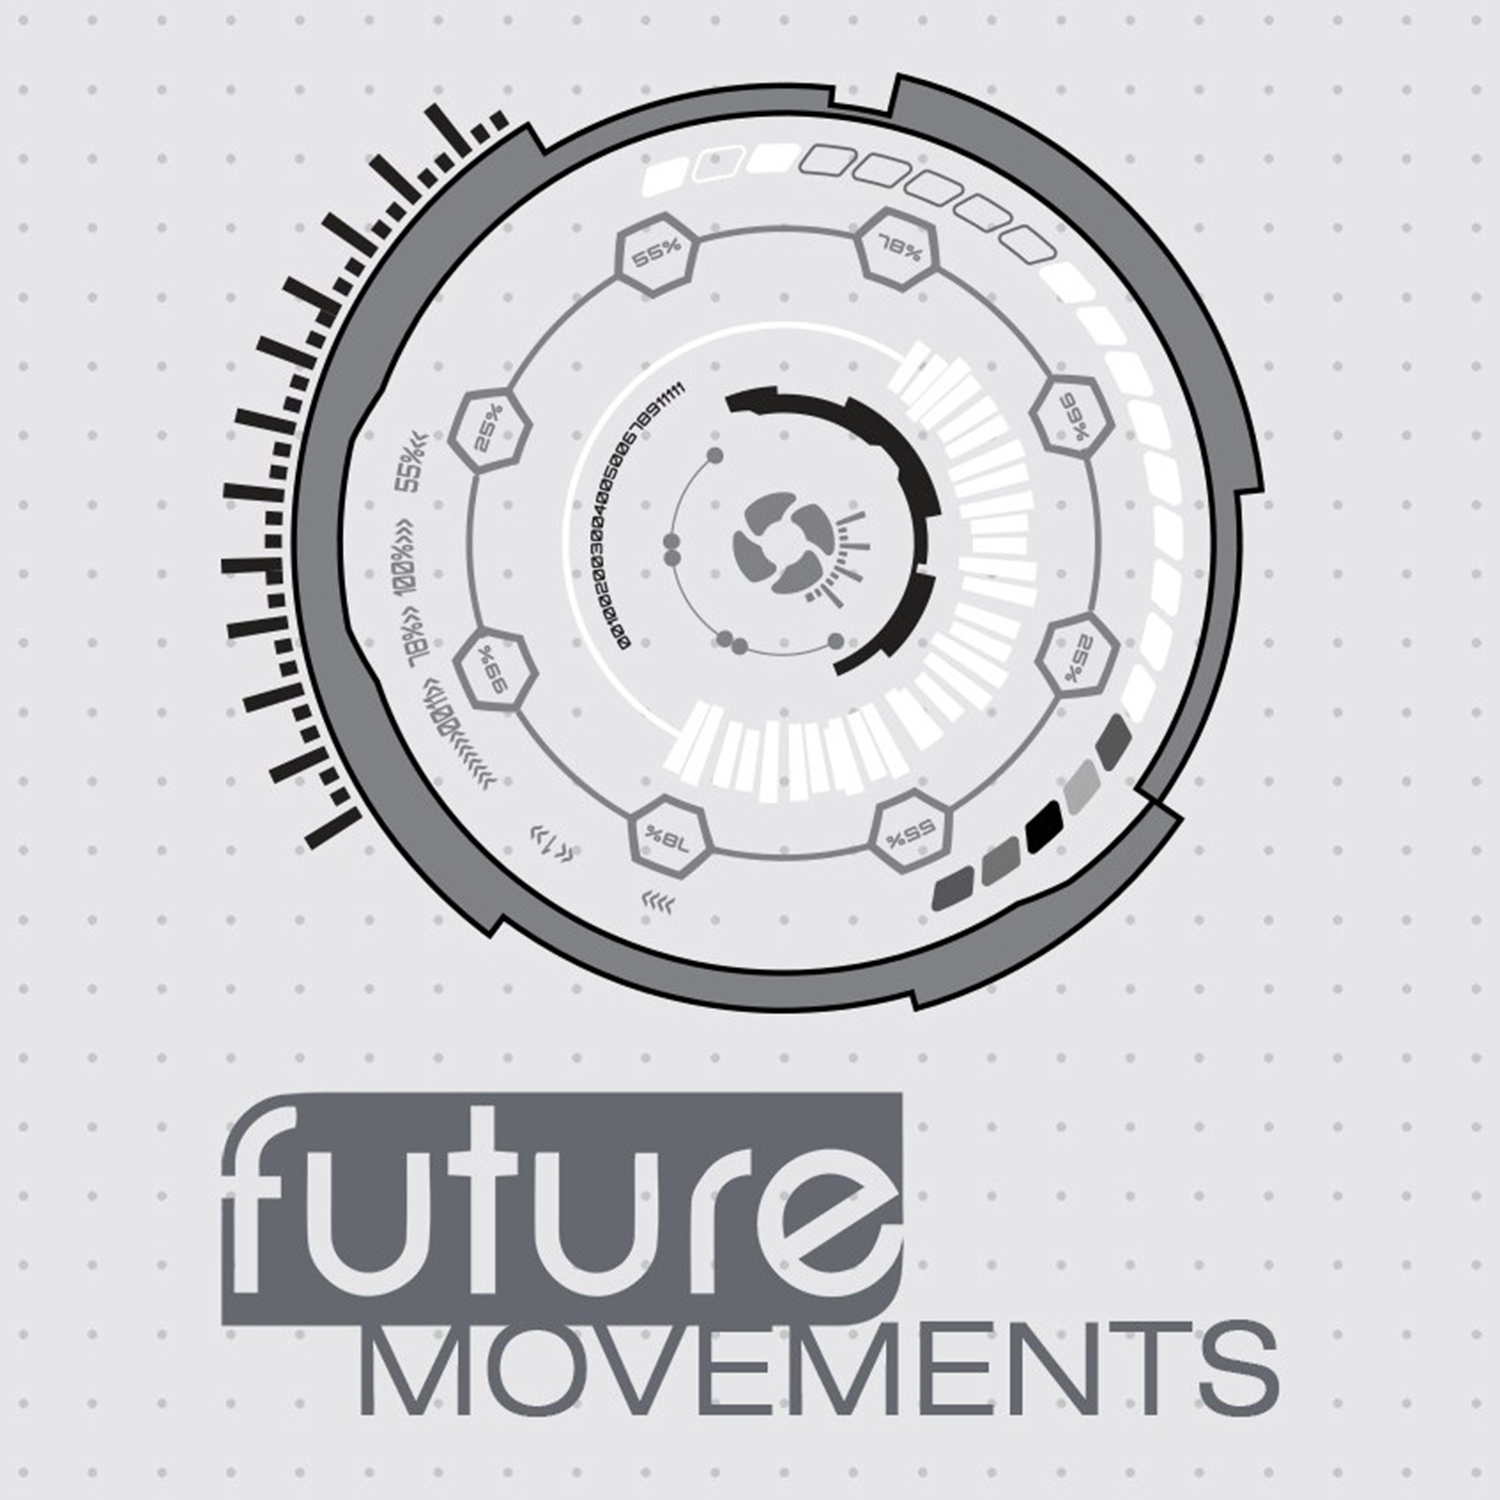 Future Movements by DroN©